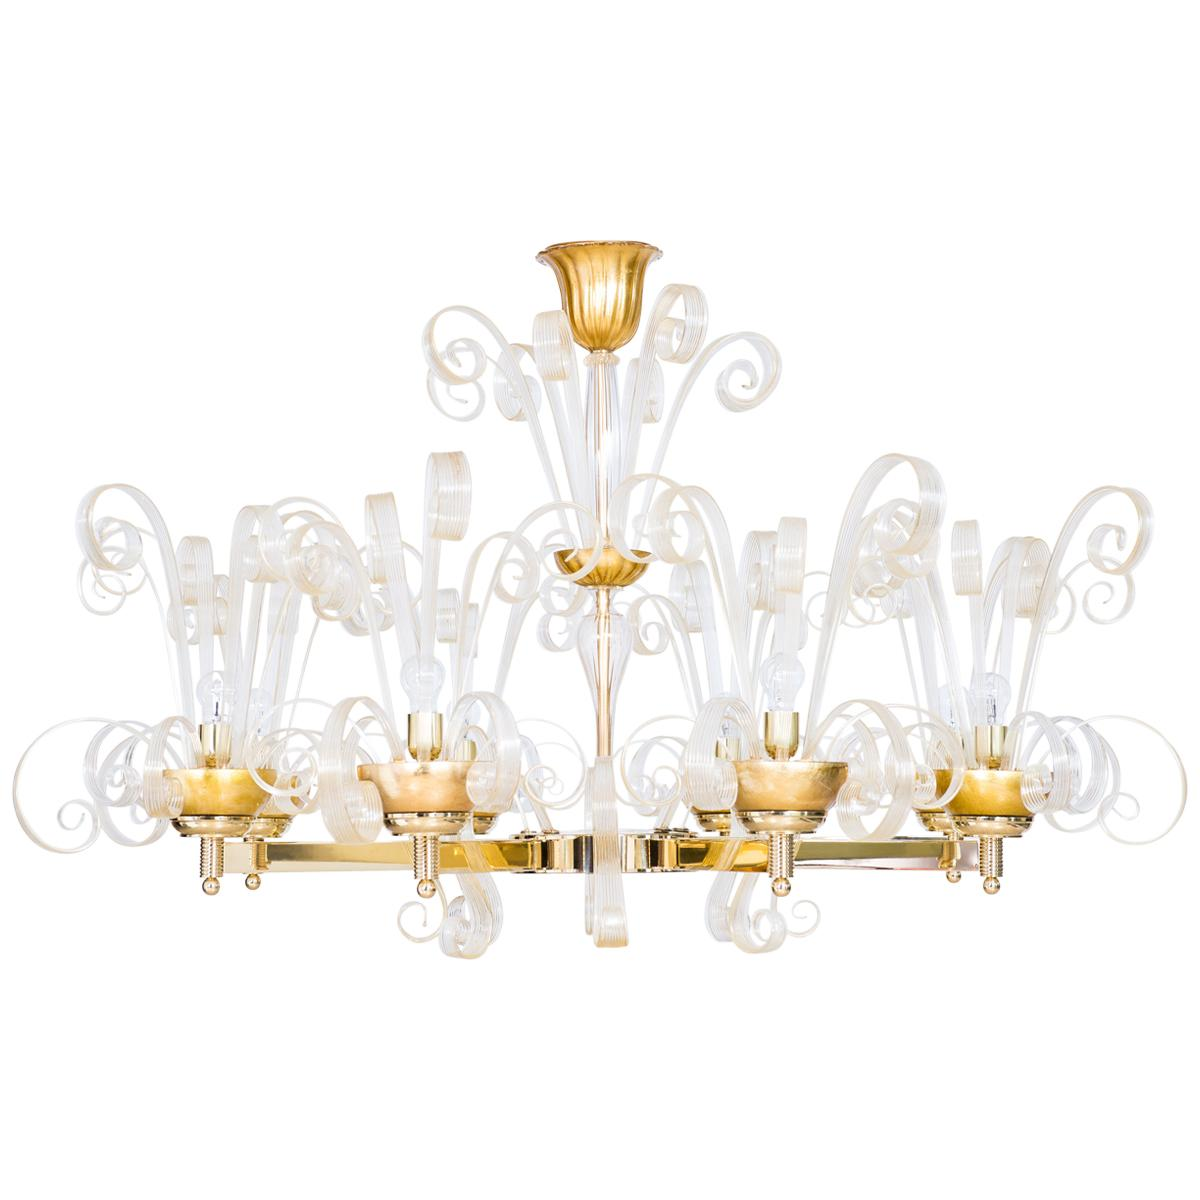 Circular gold chandelier pastorals in Blown Murano Glass limited edition Italy